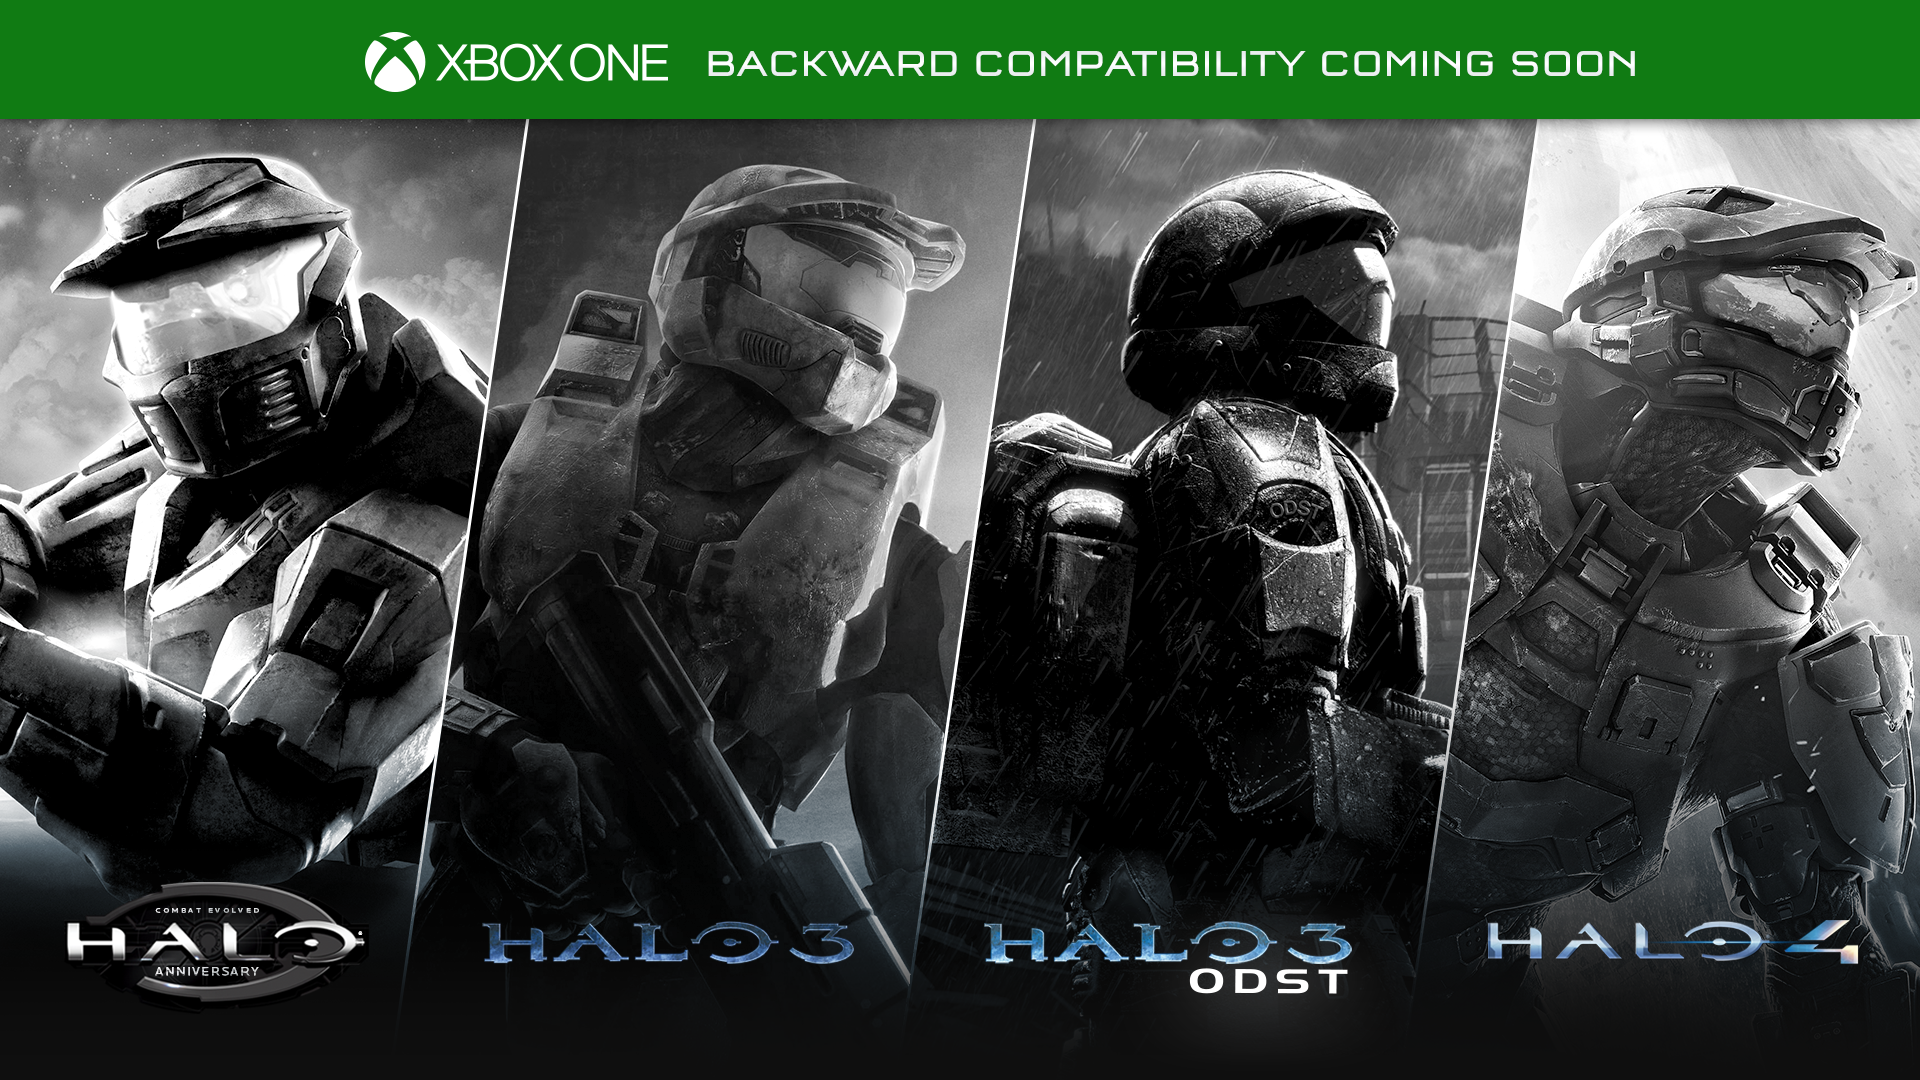 Halo backwardcompat news may spell death knell for Master Chief